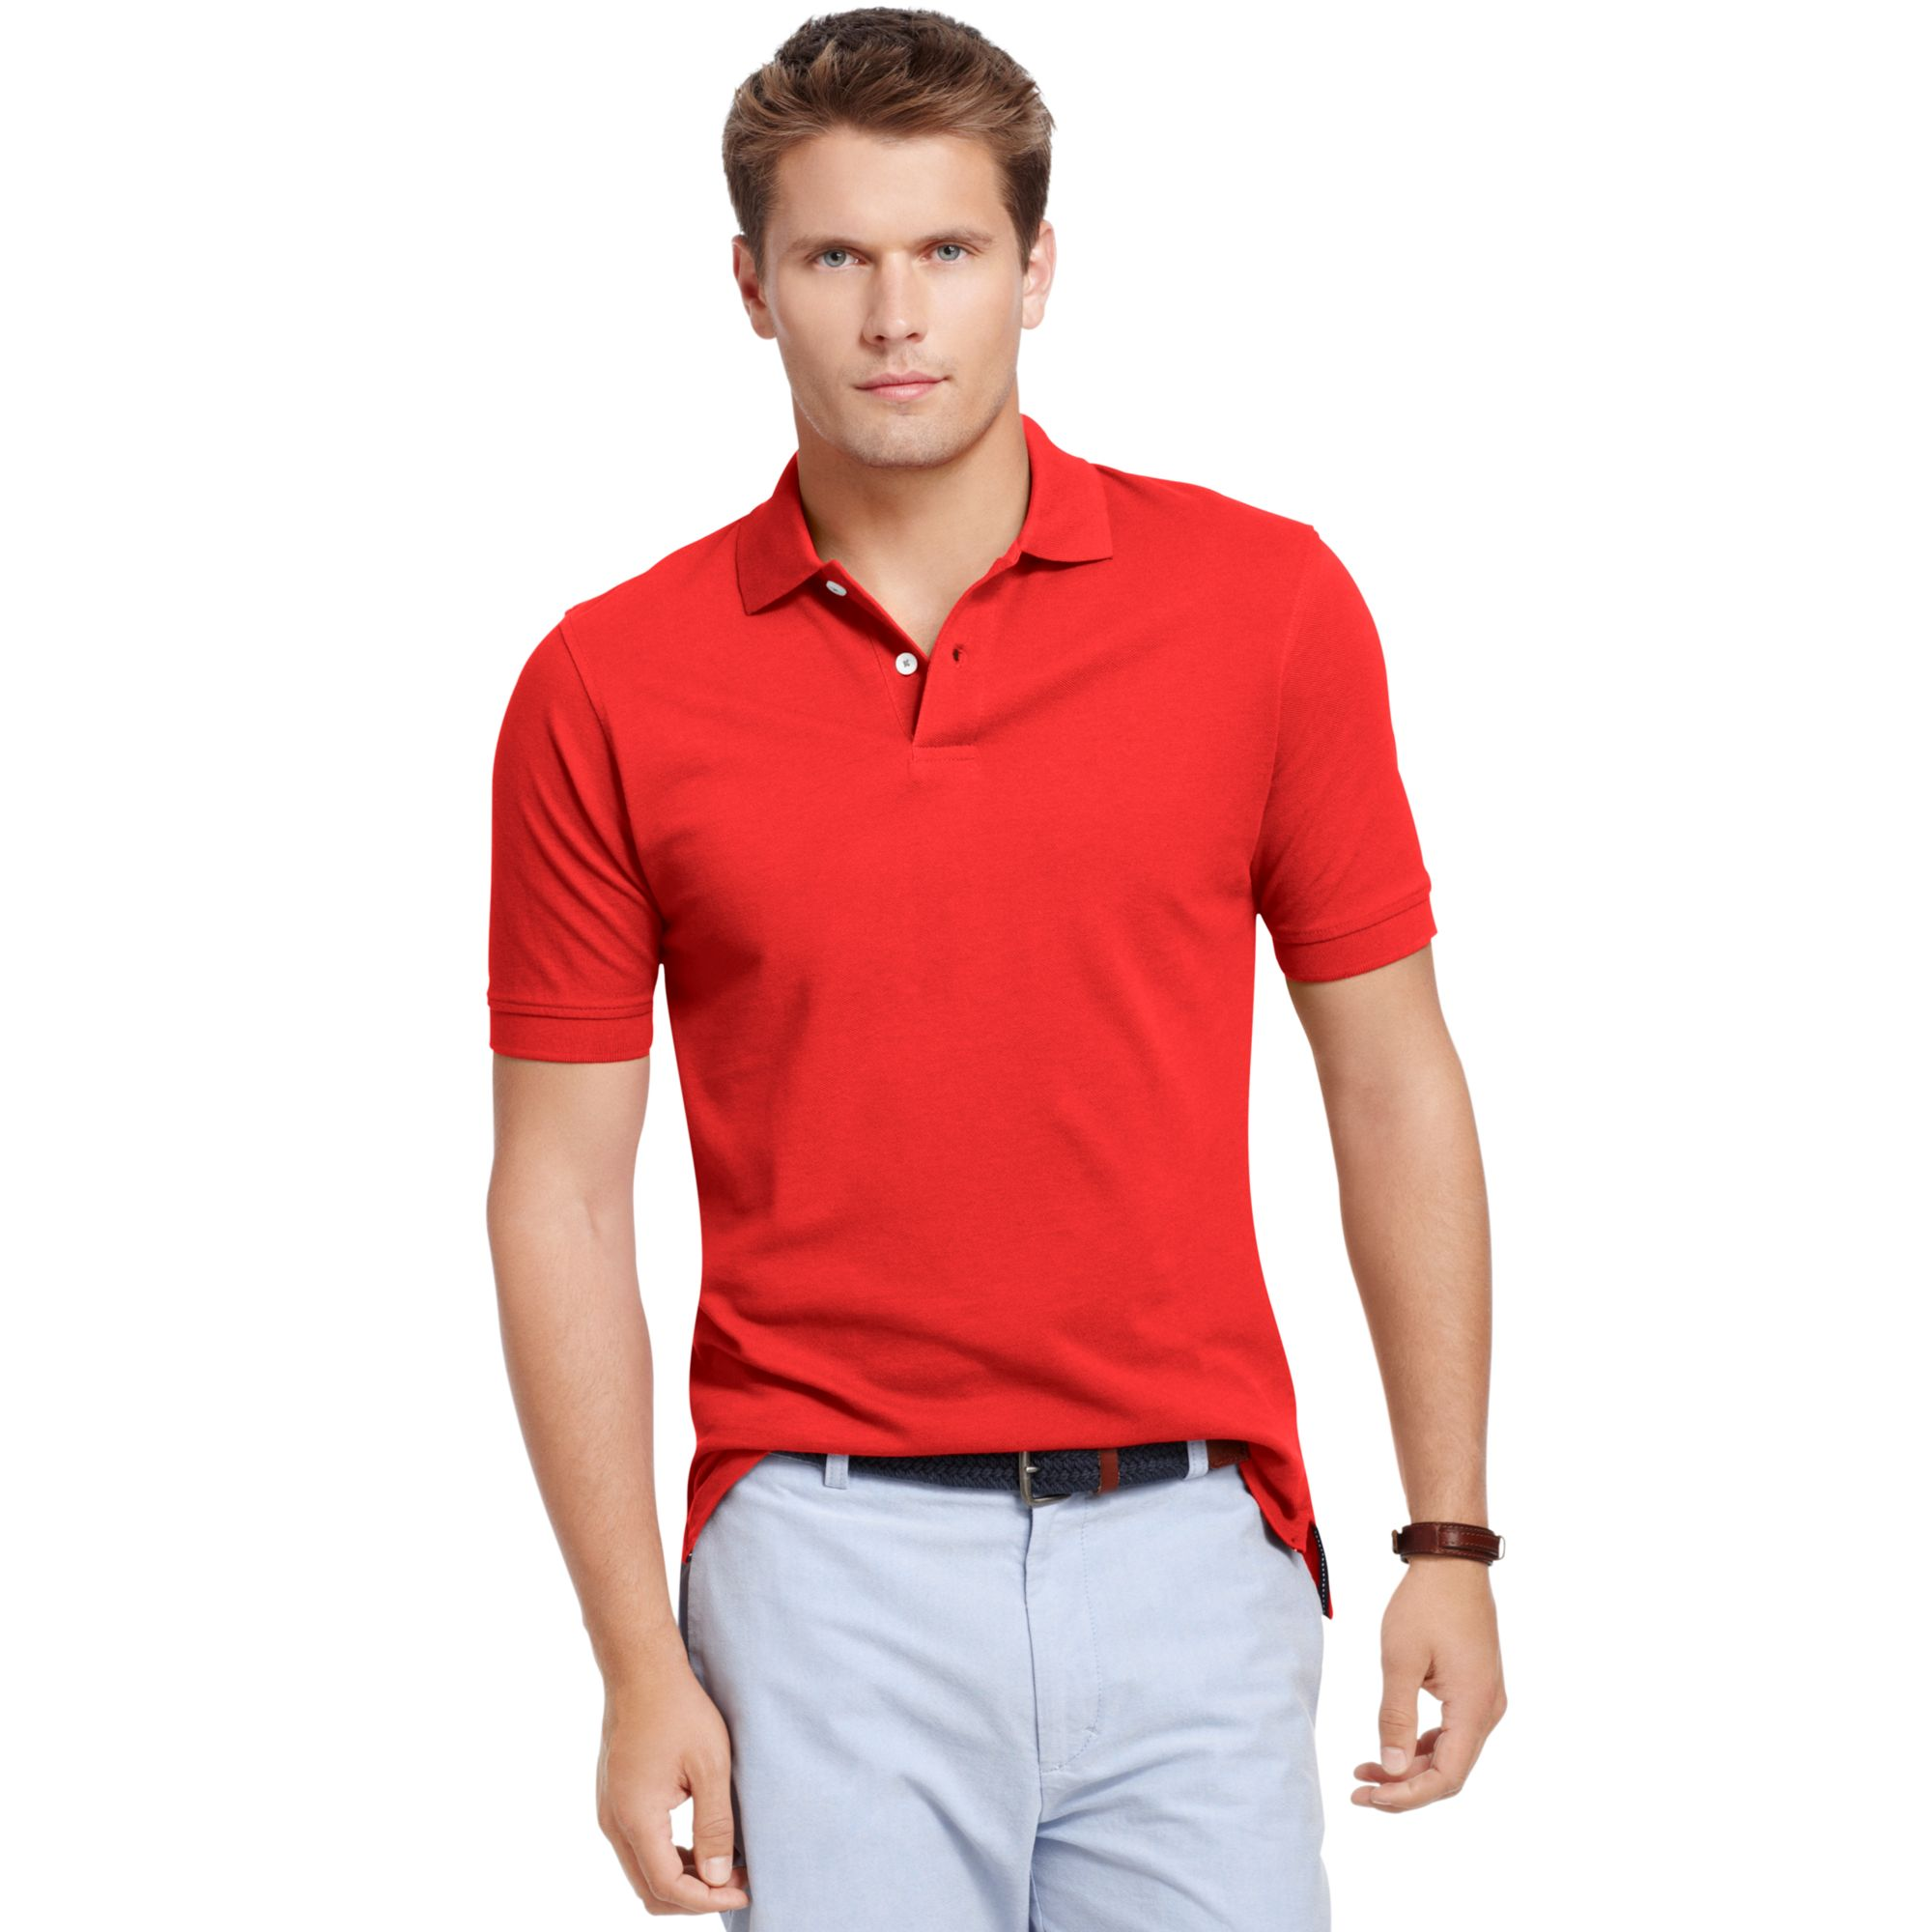 mens red collared shirt